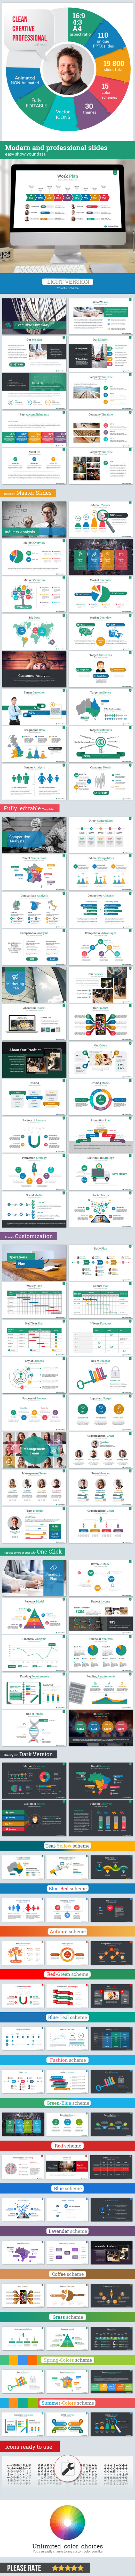 GraphicRiver Business Plan Success Presentation Template 11767235